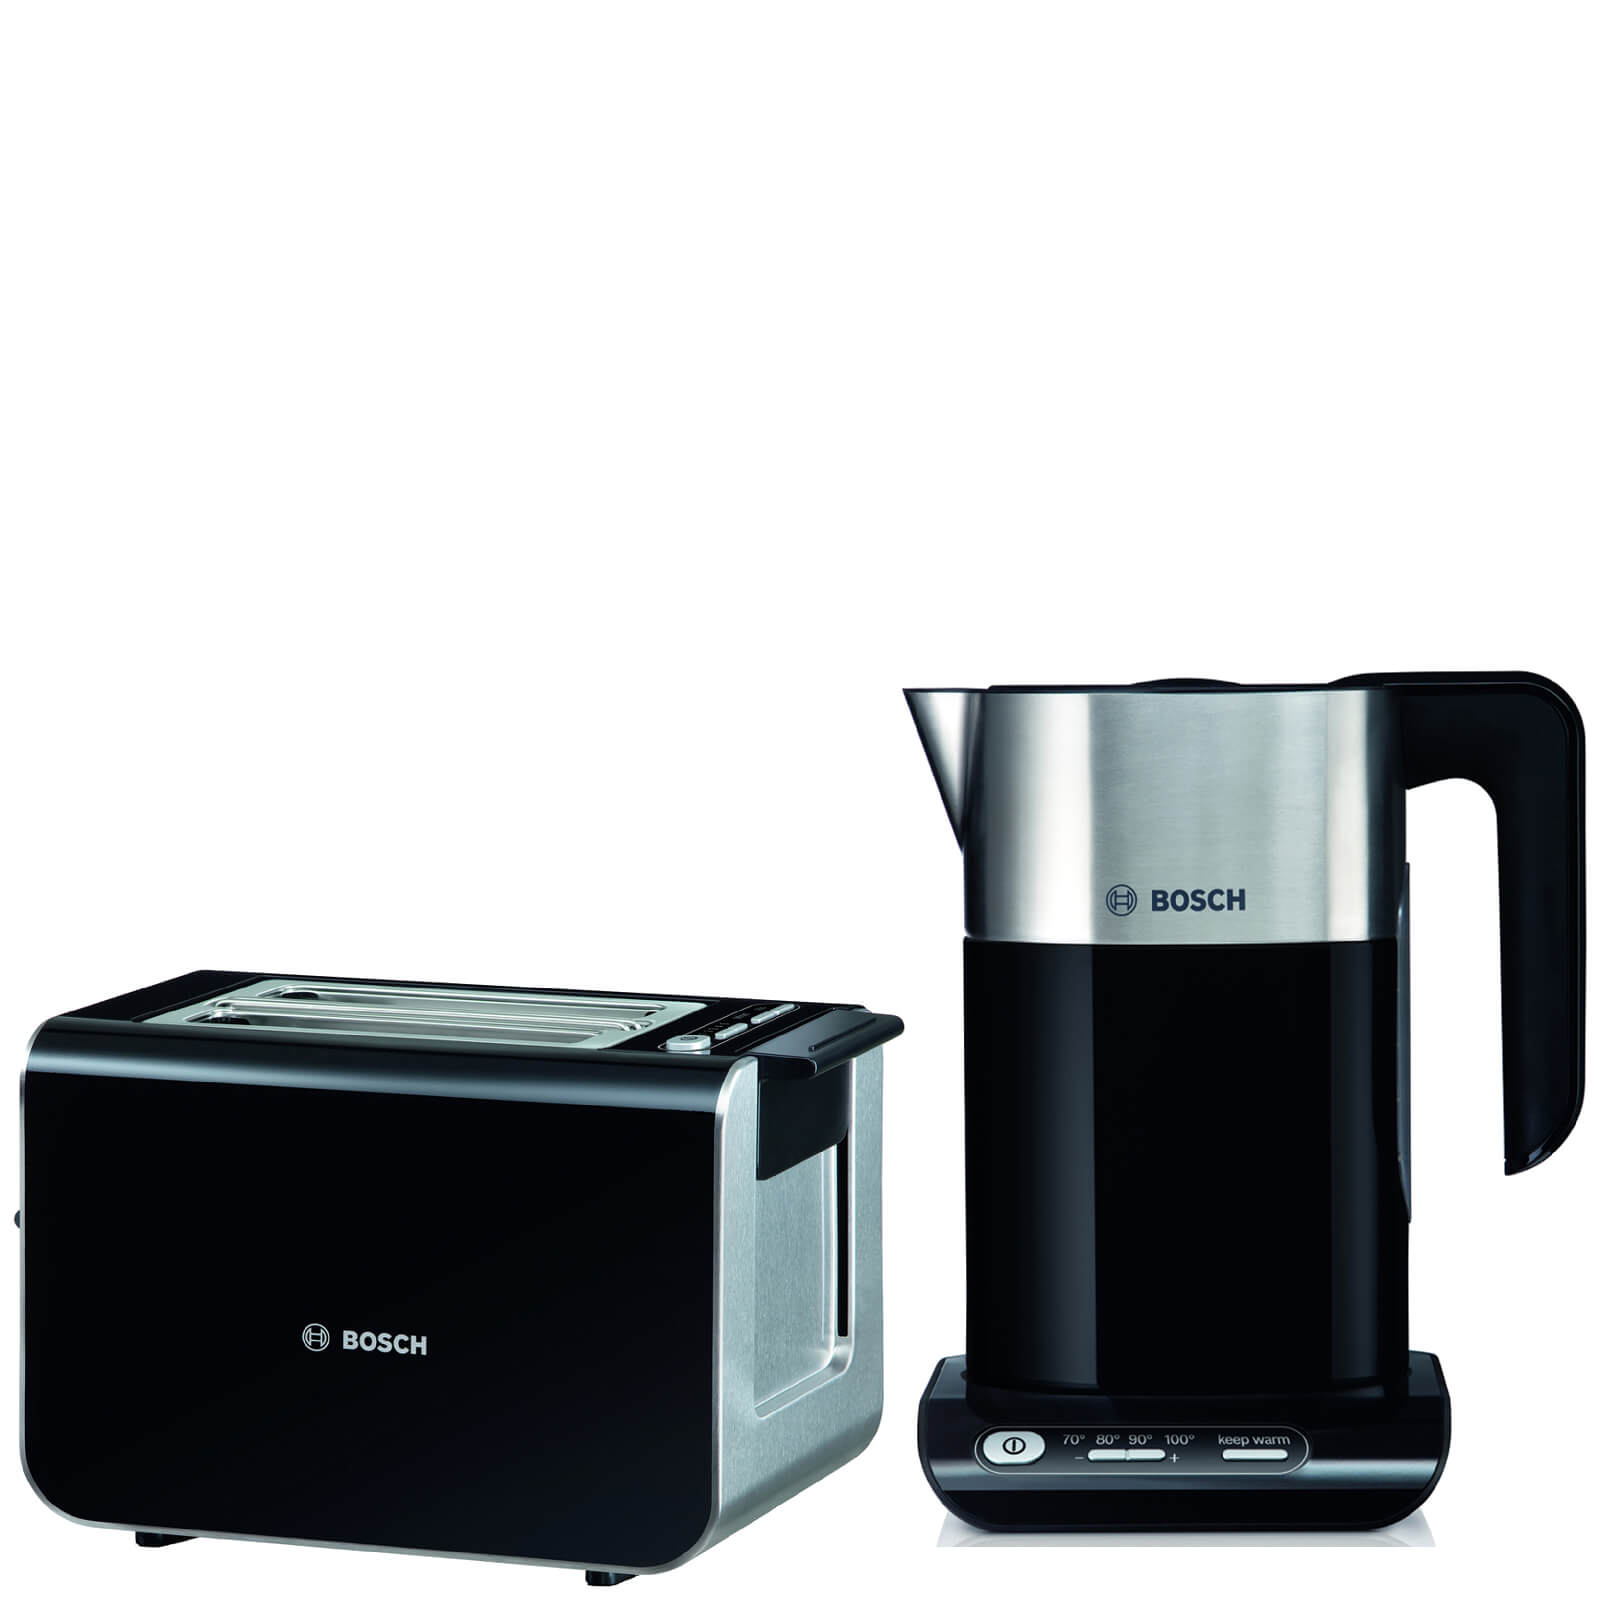 eac7a9e9b2c Bosch TWK8633GB Styline Toaster and Kettle - Black